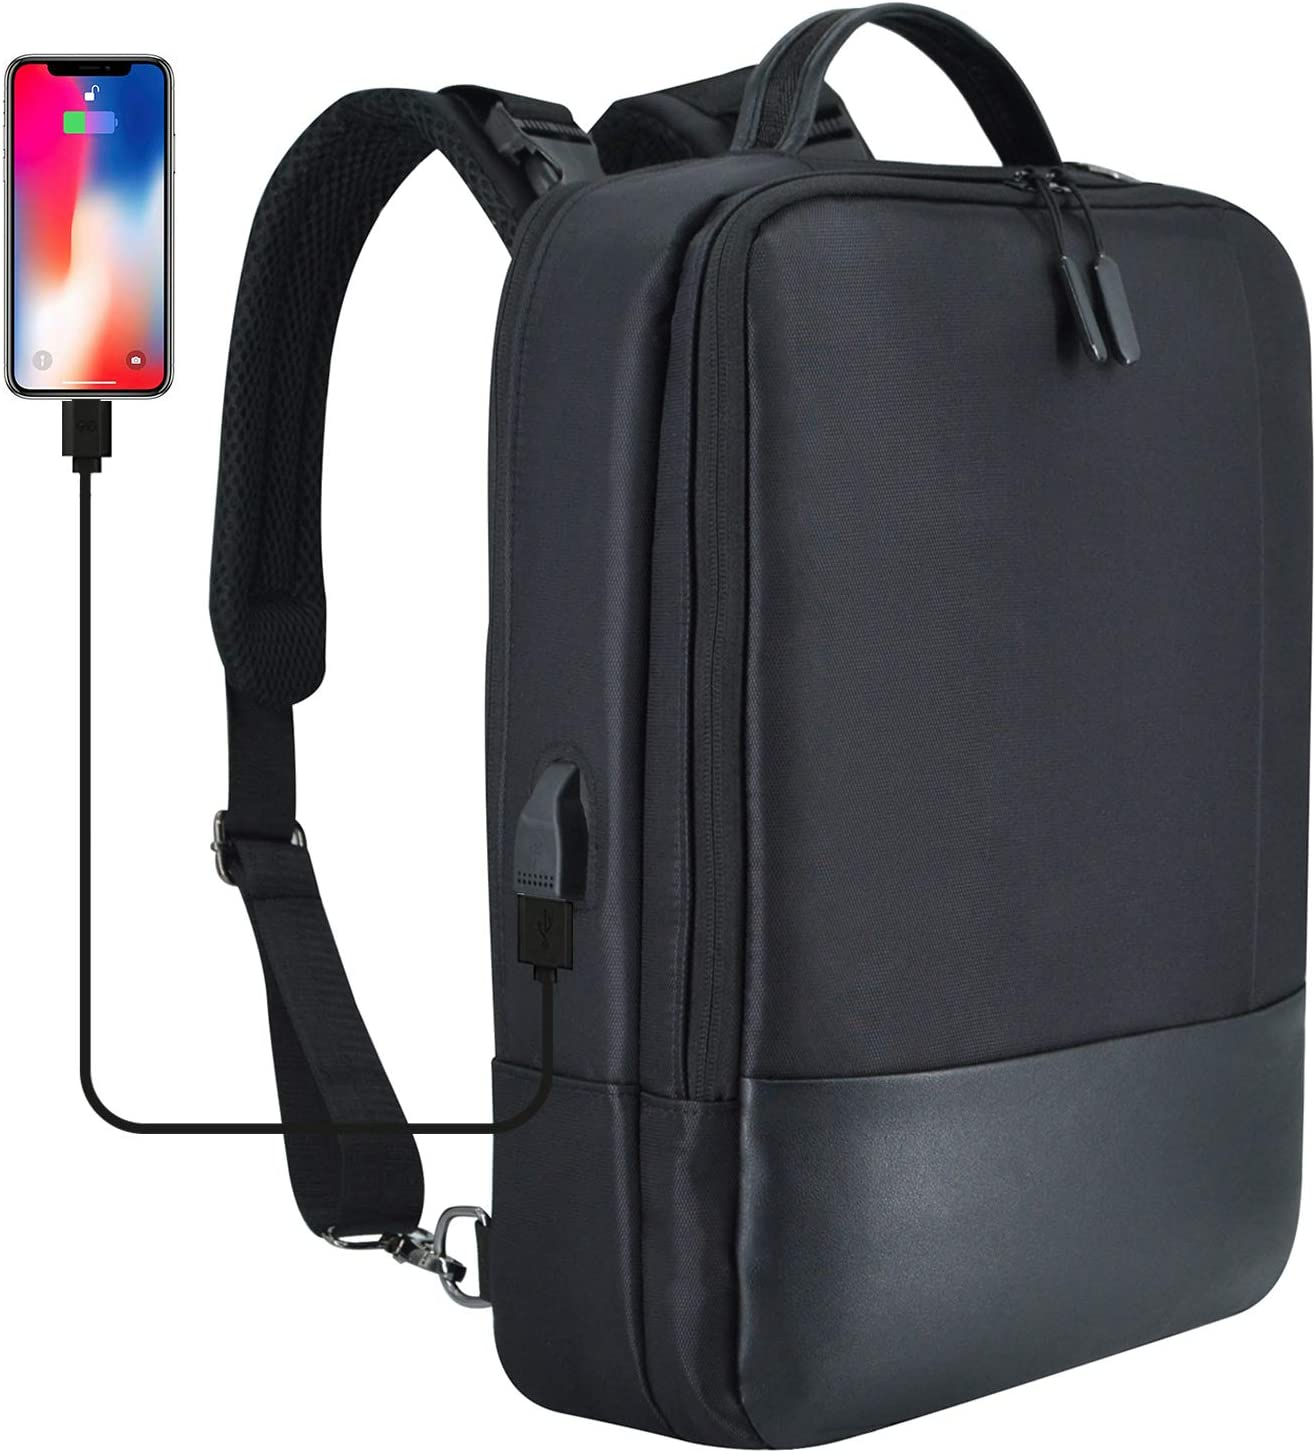 15.6inch Convertible Laptop Backpack Travel Business Bag Carrying Shoulder Bag with USB Port for Macbook Pro 15